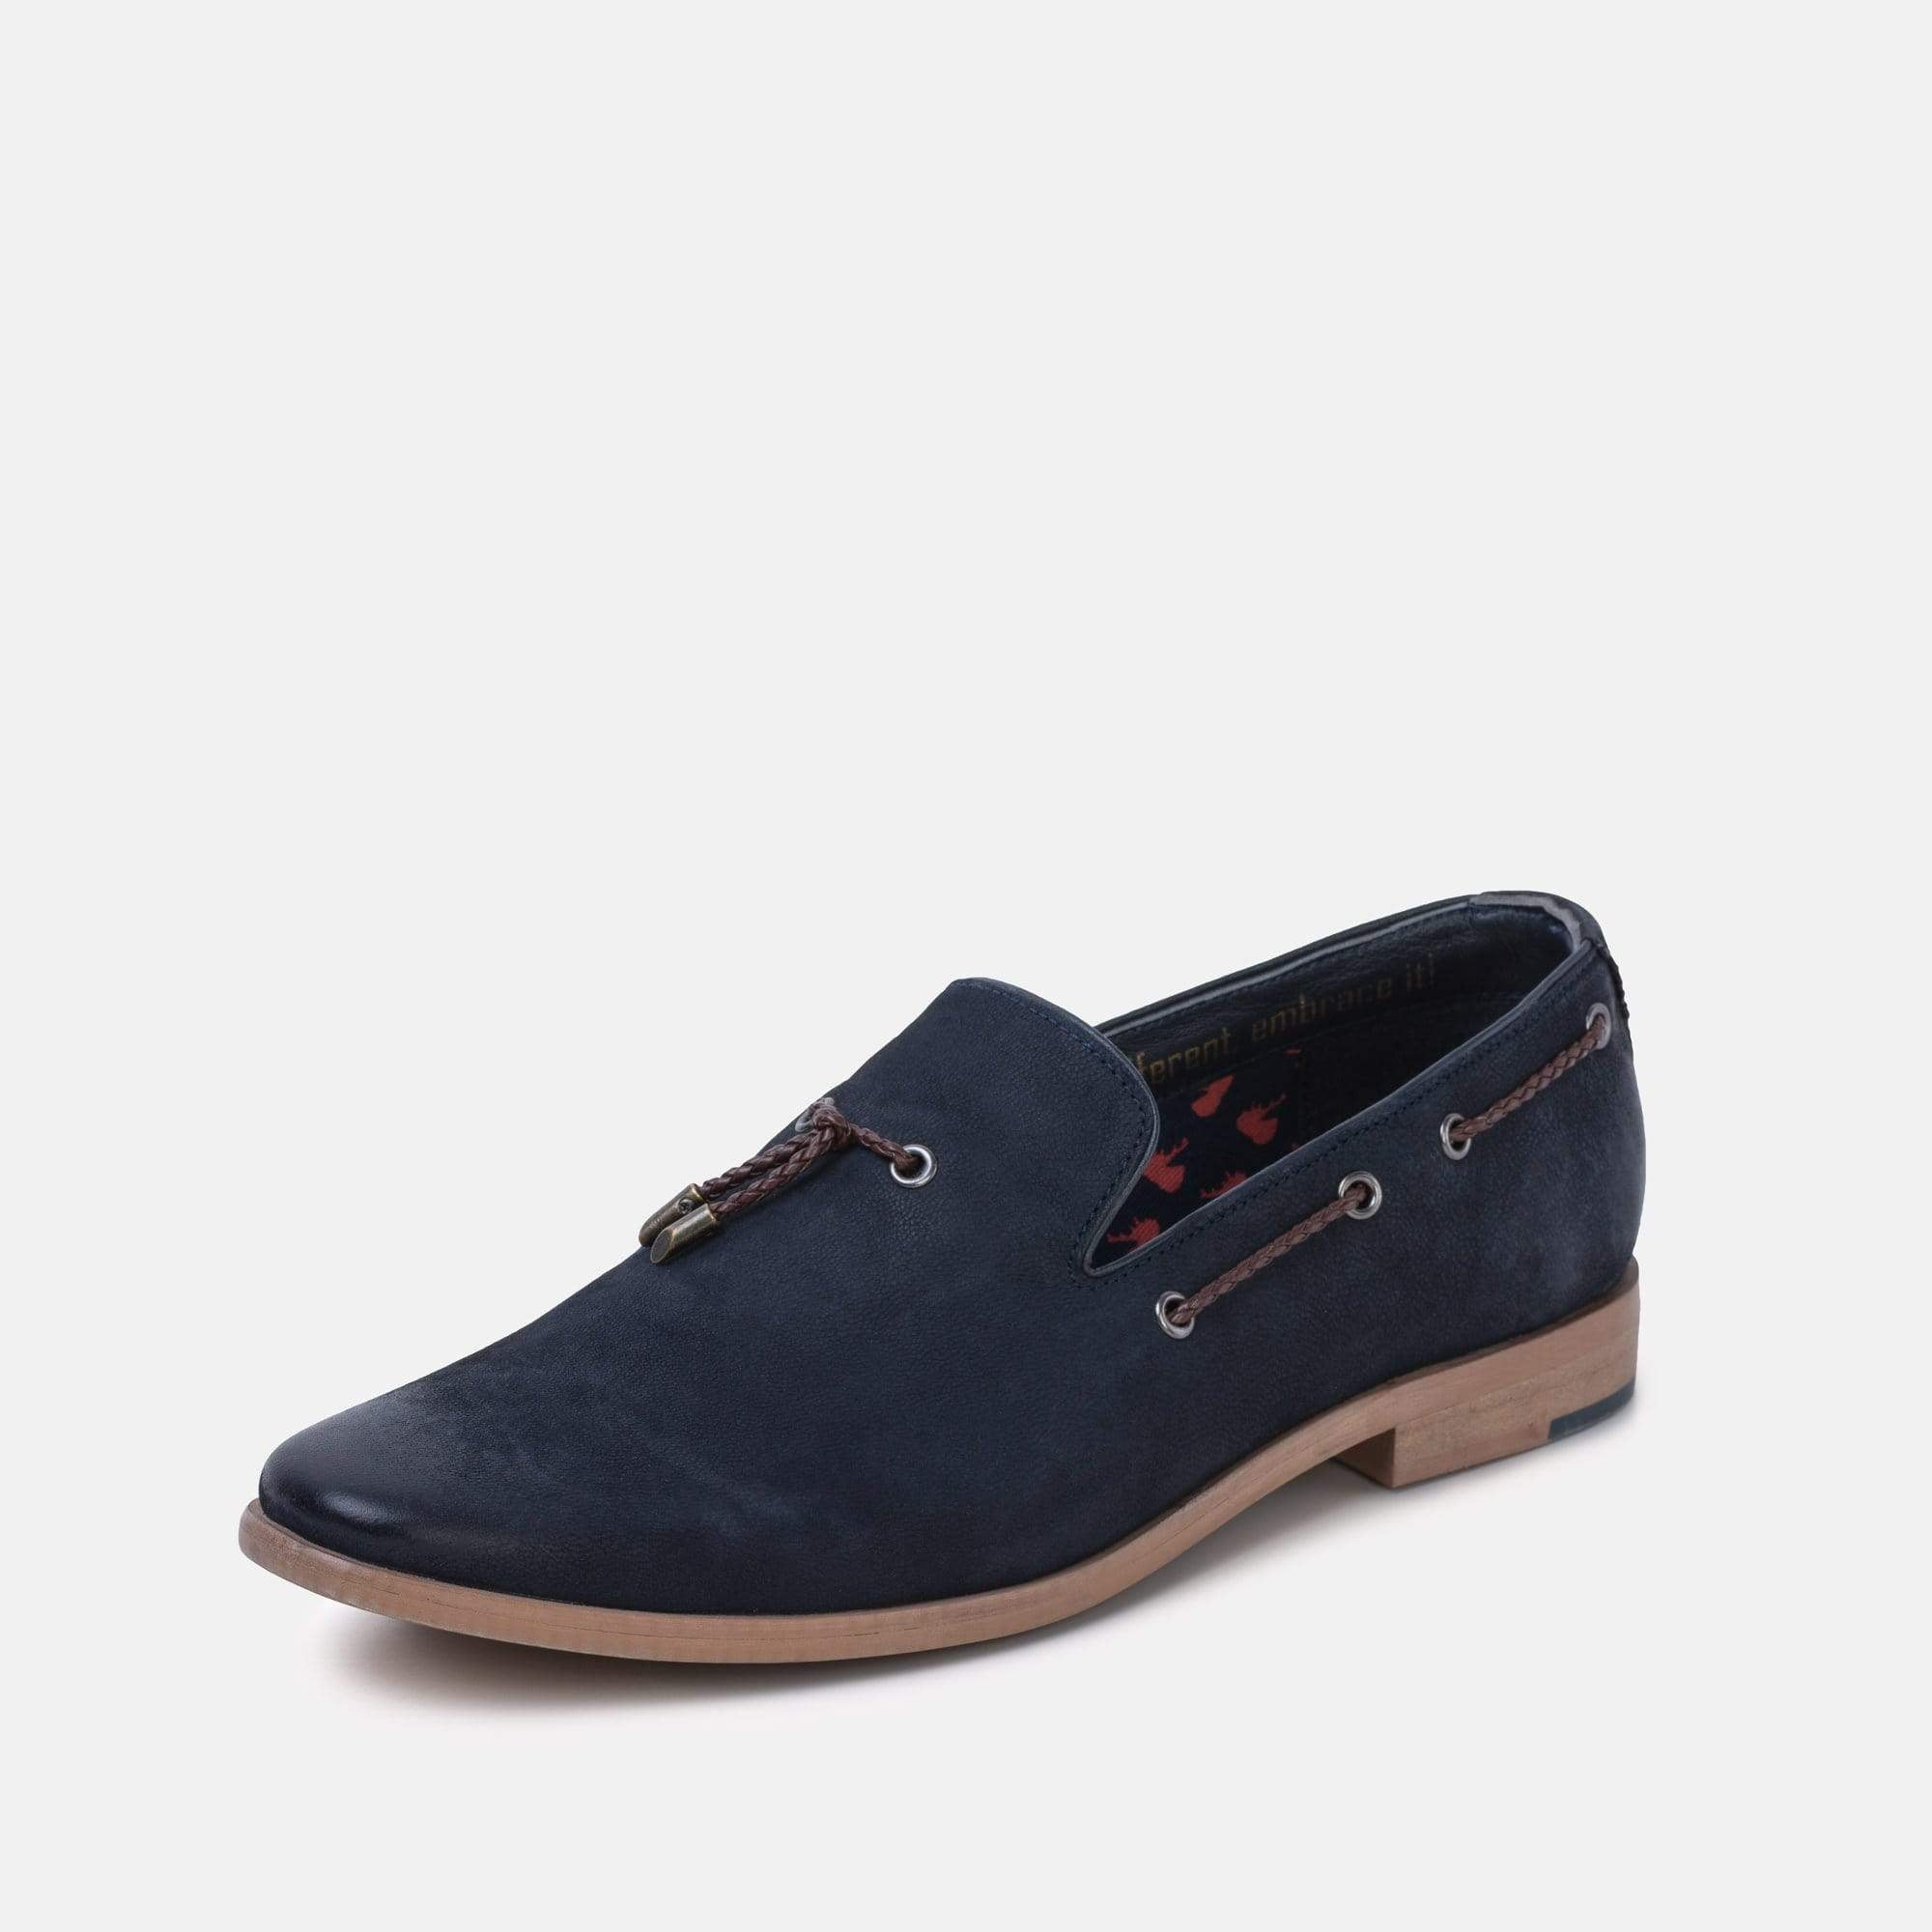 Mens navy nubuck loafer with suede upper classic tab slipper pattern with tassle and interlaced detail